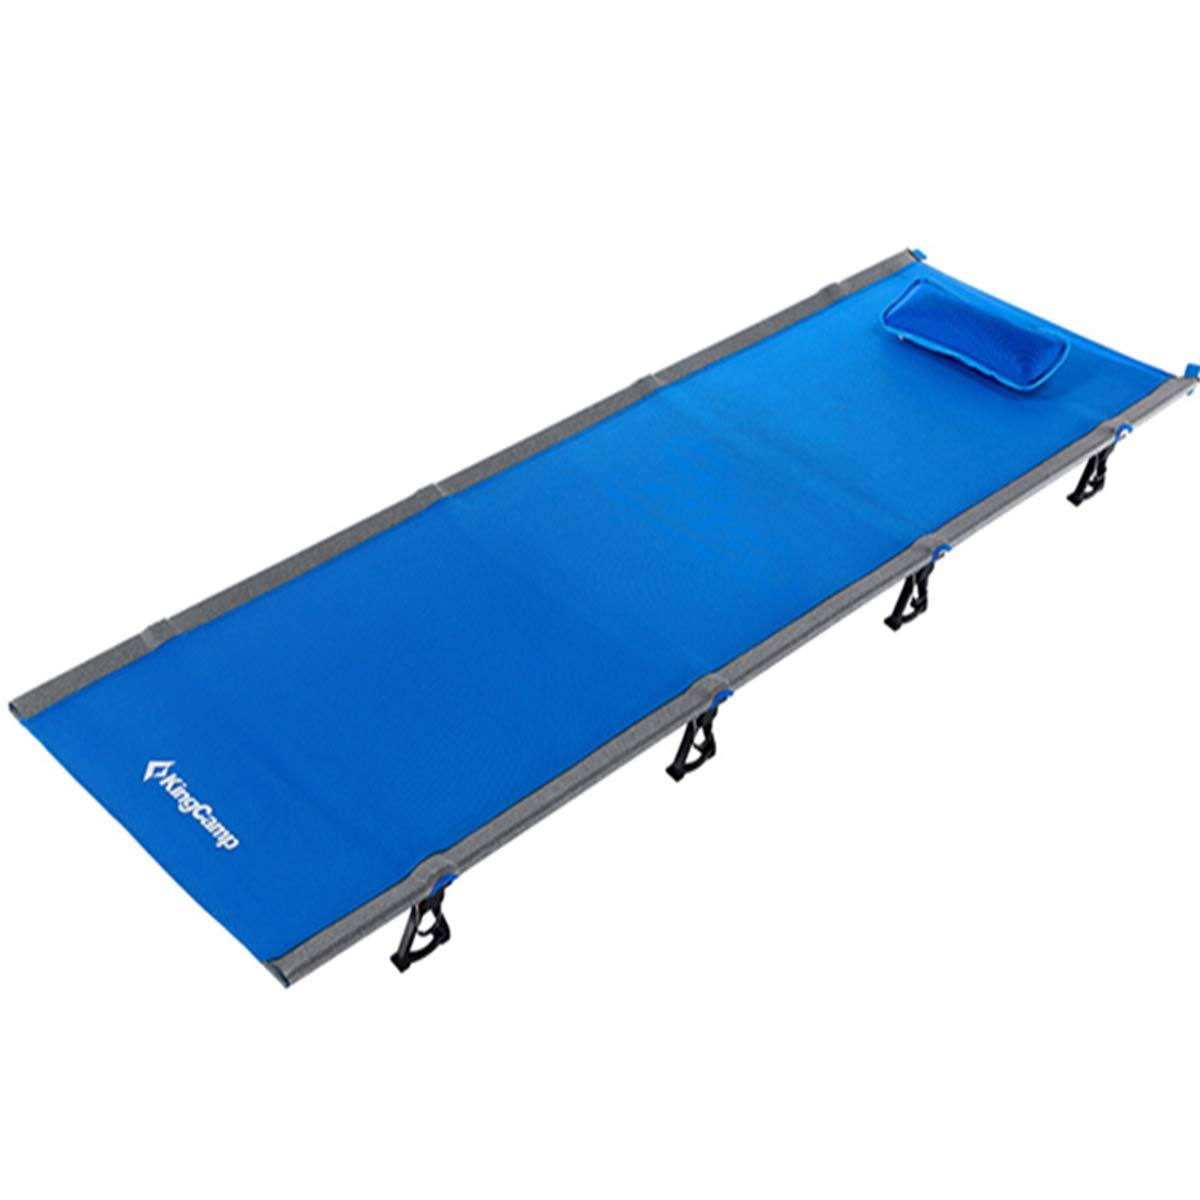 KingCamp Ultralight Compact Folding Camping Cot Bed, 4.9 Pounds Blue